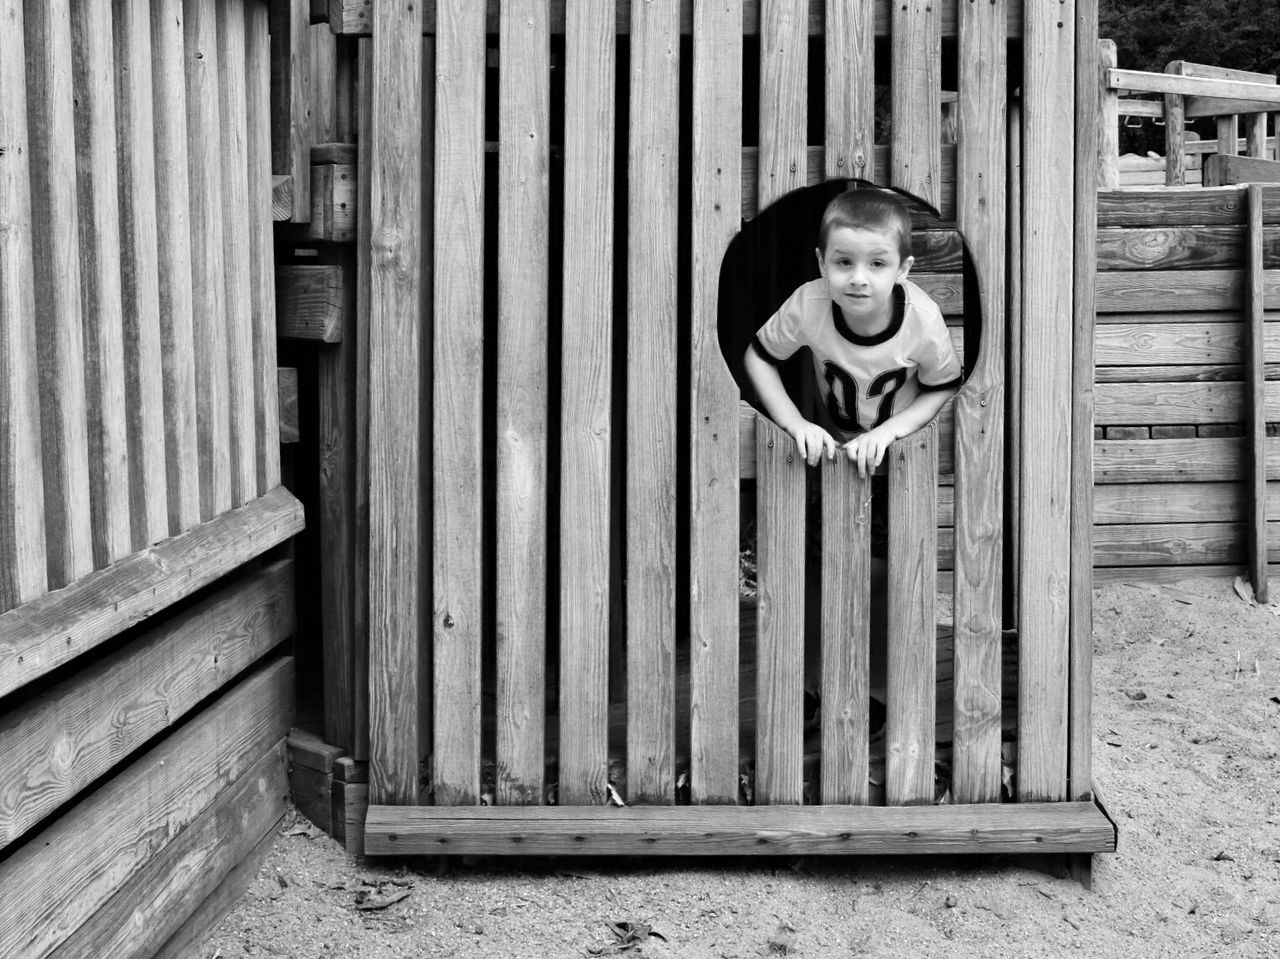 Wooden picture frame.. At The Park Check This Out B&W Portrait Childhood Negative Space